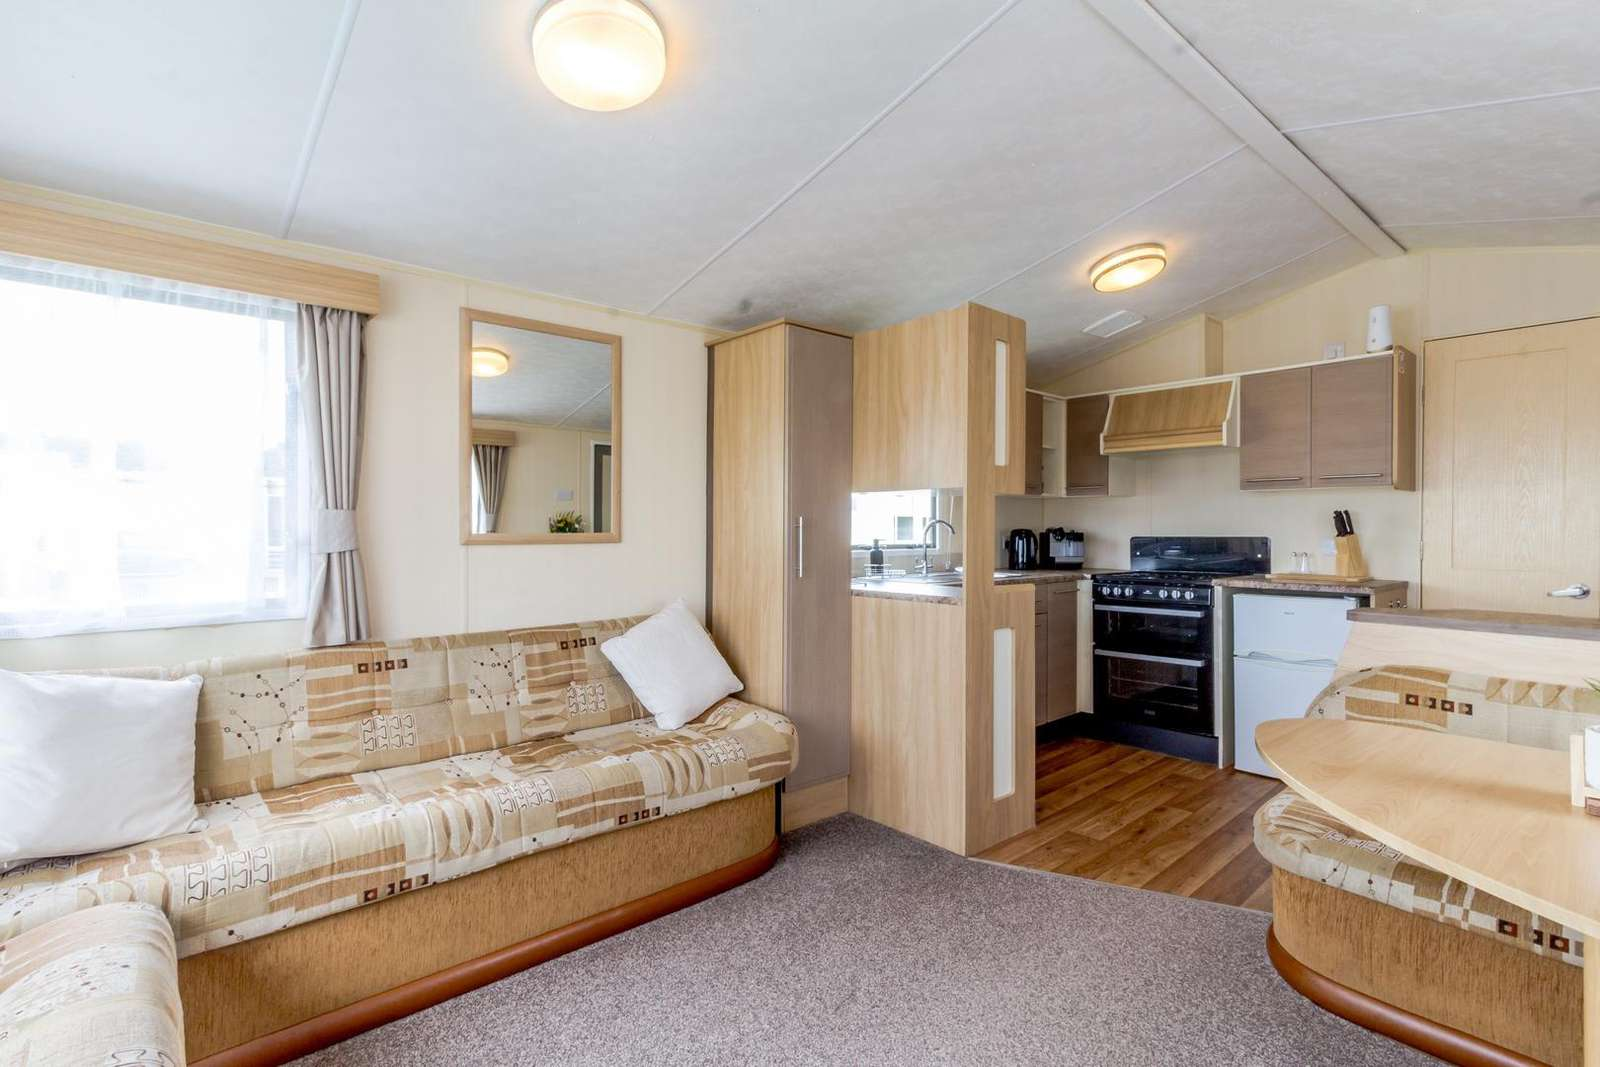 We ensure that all our caravans are cleaned to the highest standard